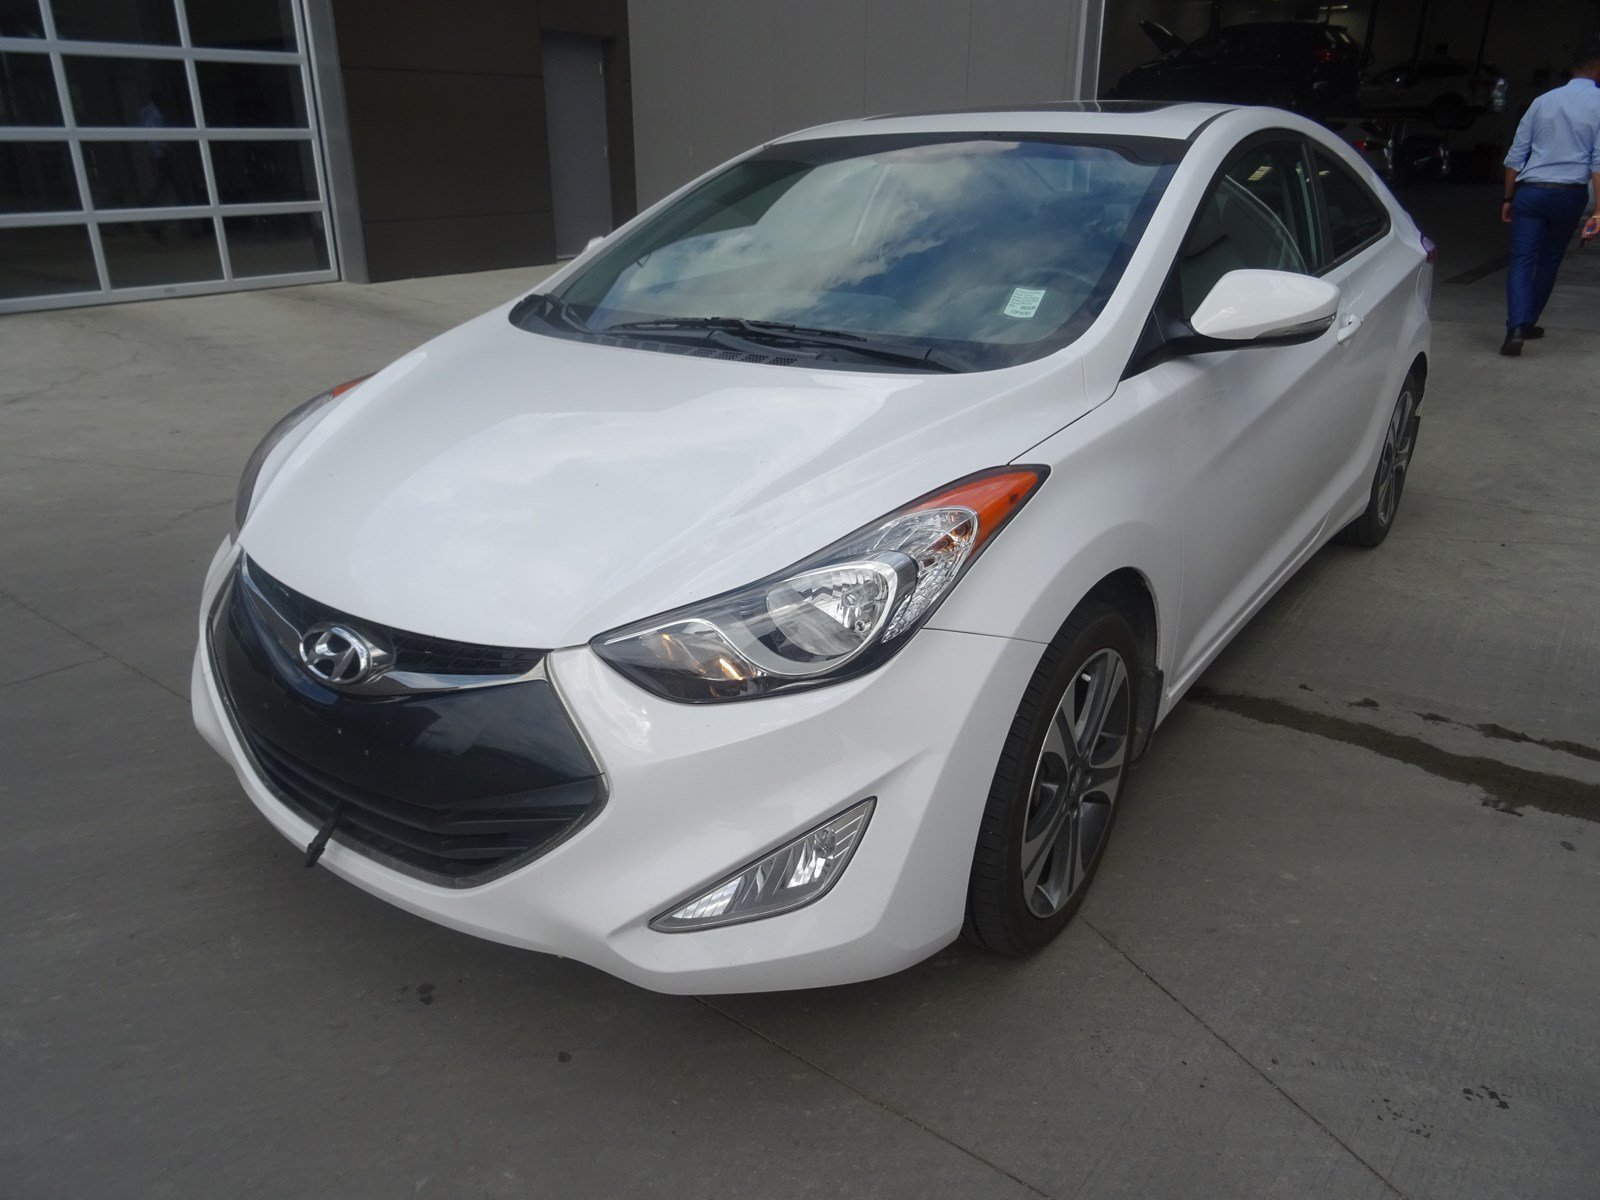 Pre Owned 2013 Hyundai Elantra Coupe LIMITED COUPE Navigation (GPS),  Leather, Heated Seats, Sunroof, A/C,   Edmonton